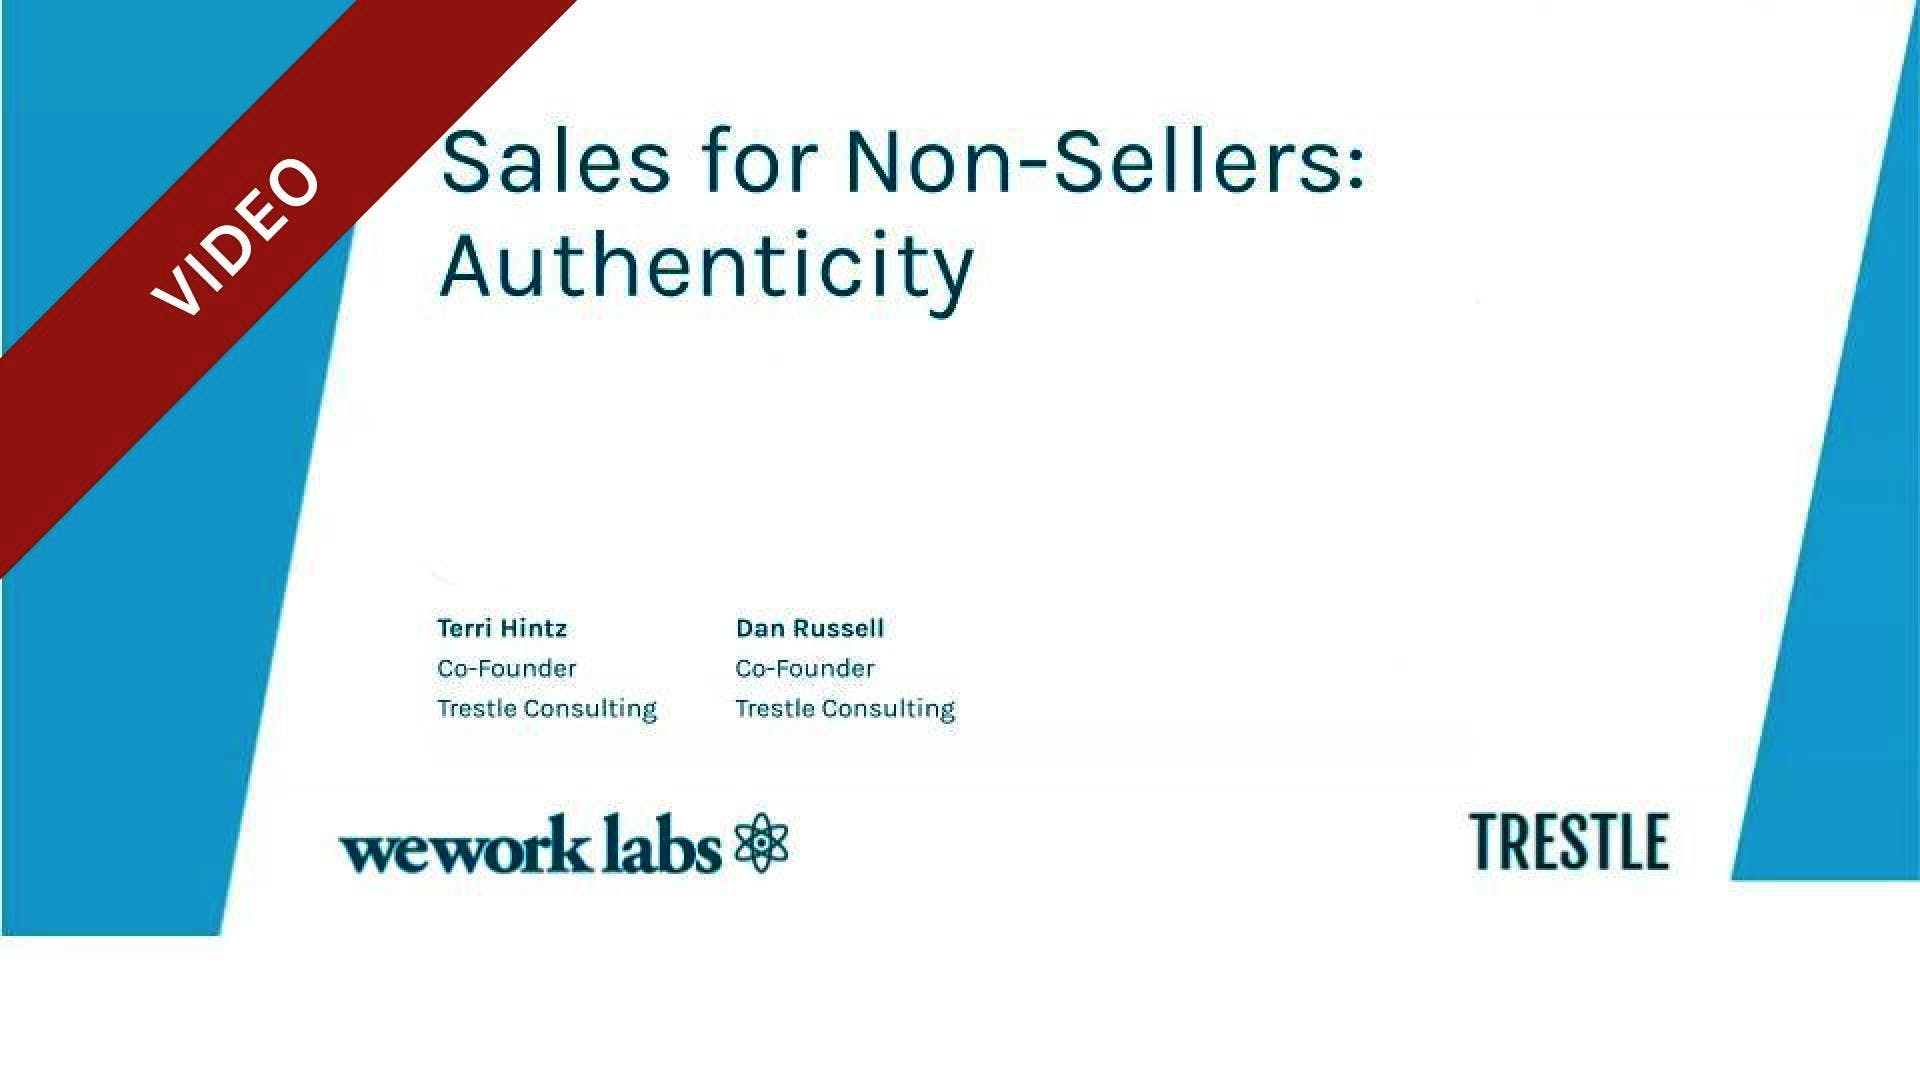 Sales for Non-Sellers: Authenticity